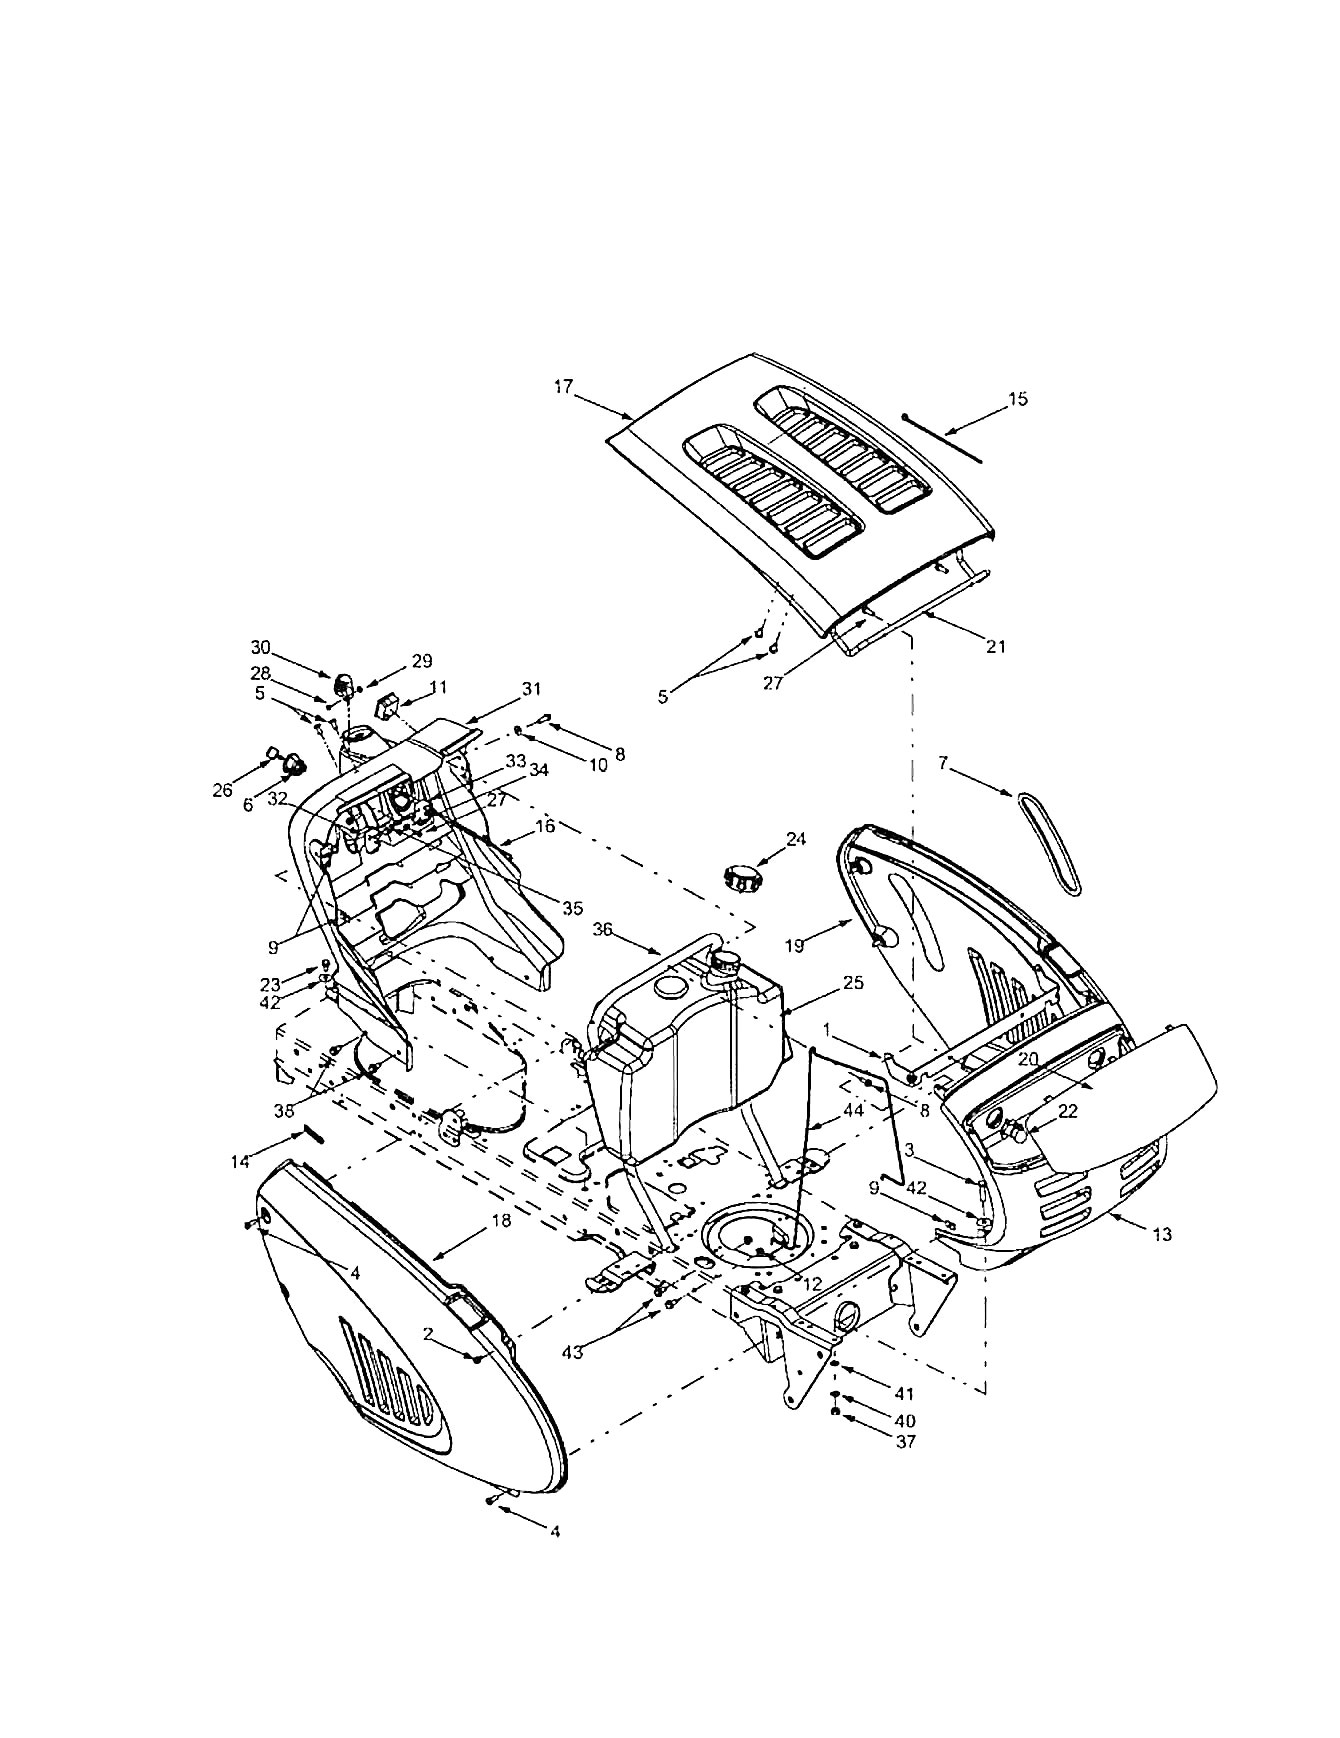 hight resolution of lawn mower paintings search result at paintingvalley com 1340x1738 wiring diagram troy bilt lawn mower lawn